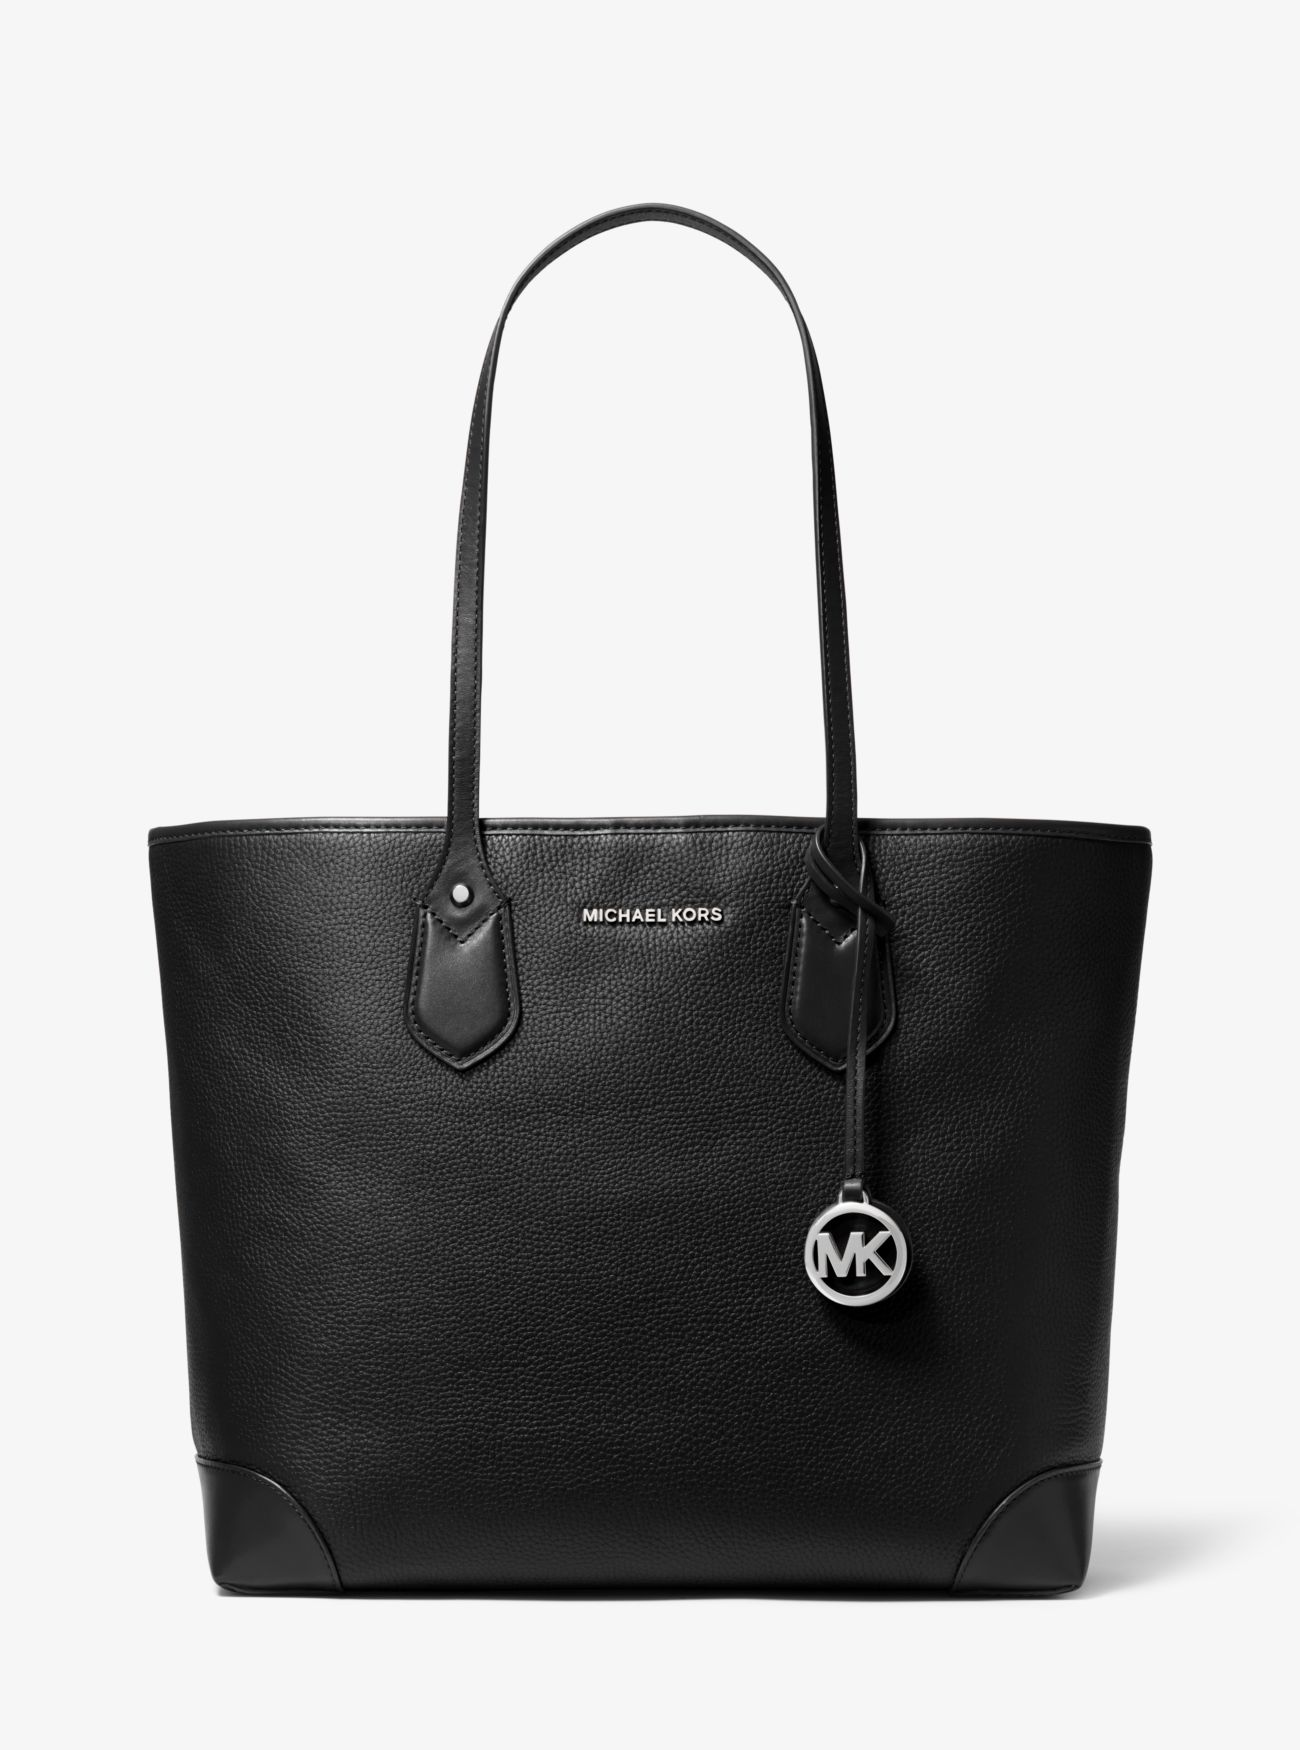 2543adbc89 Eva Large Pebbled Leather Tote Bag | Michael Kors